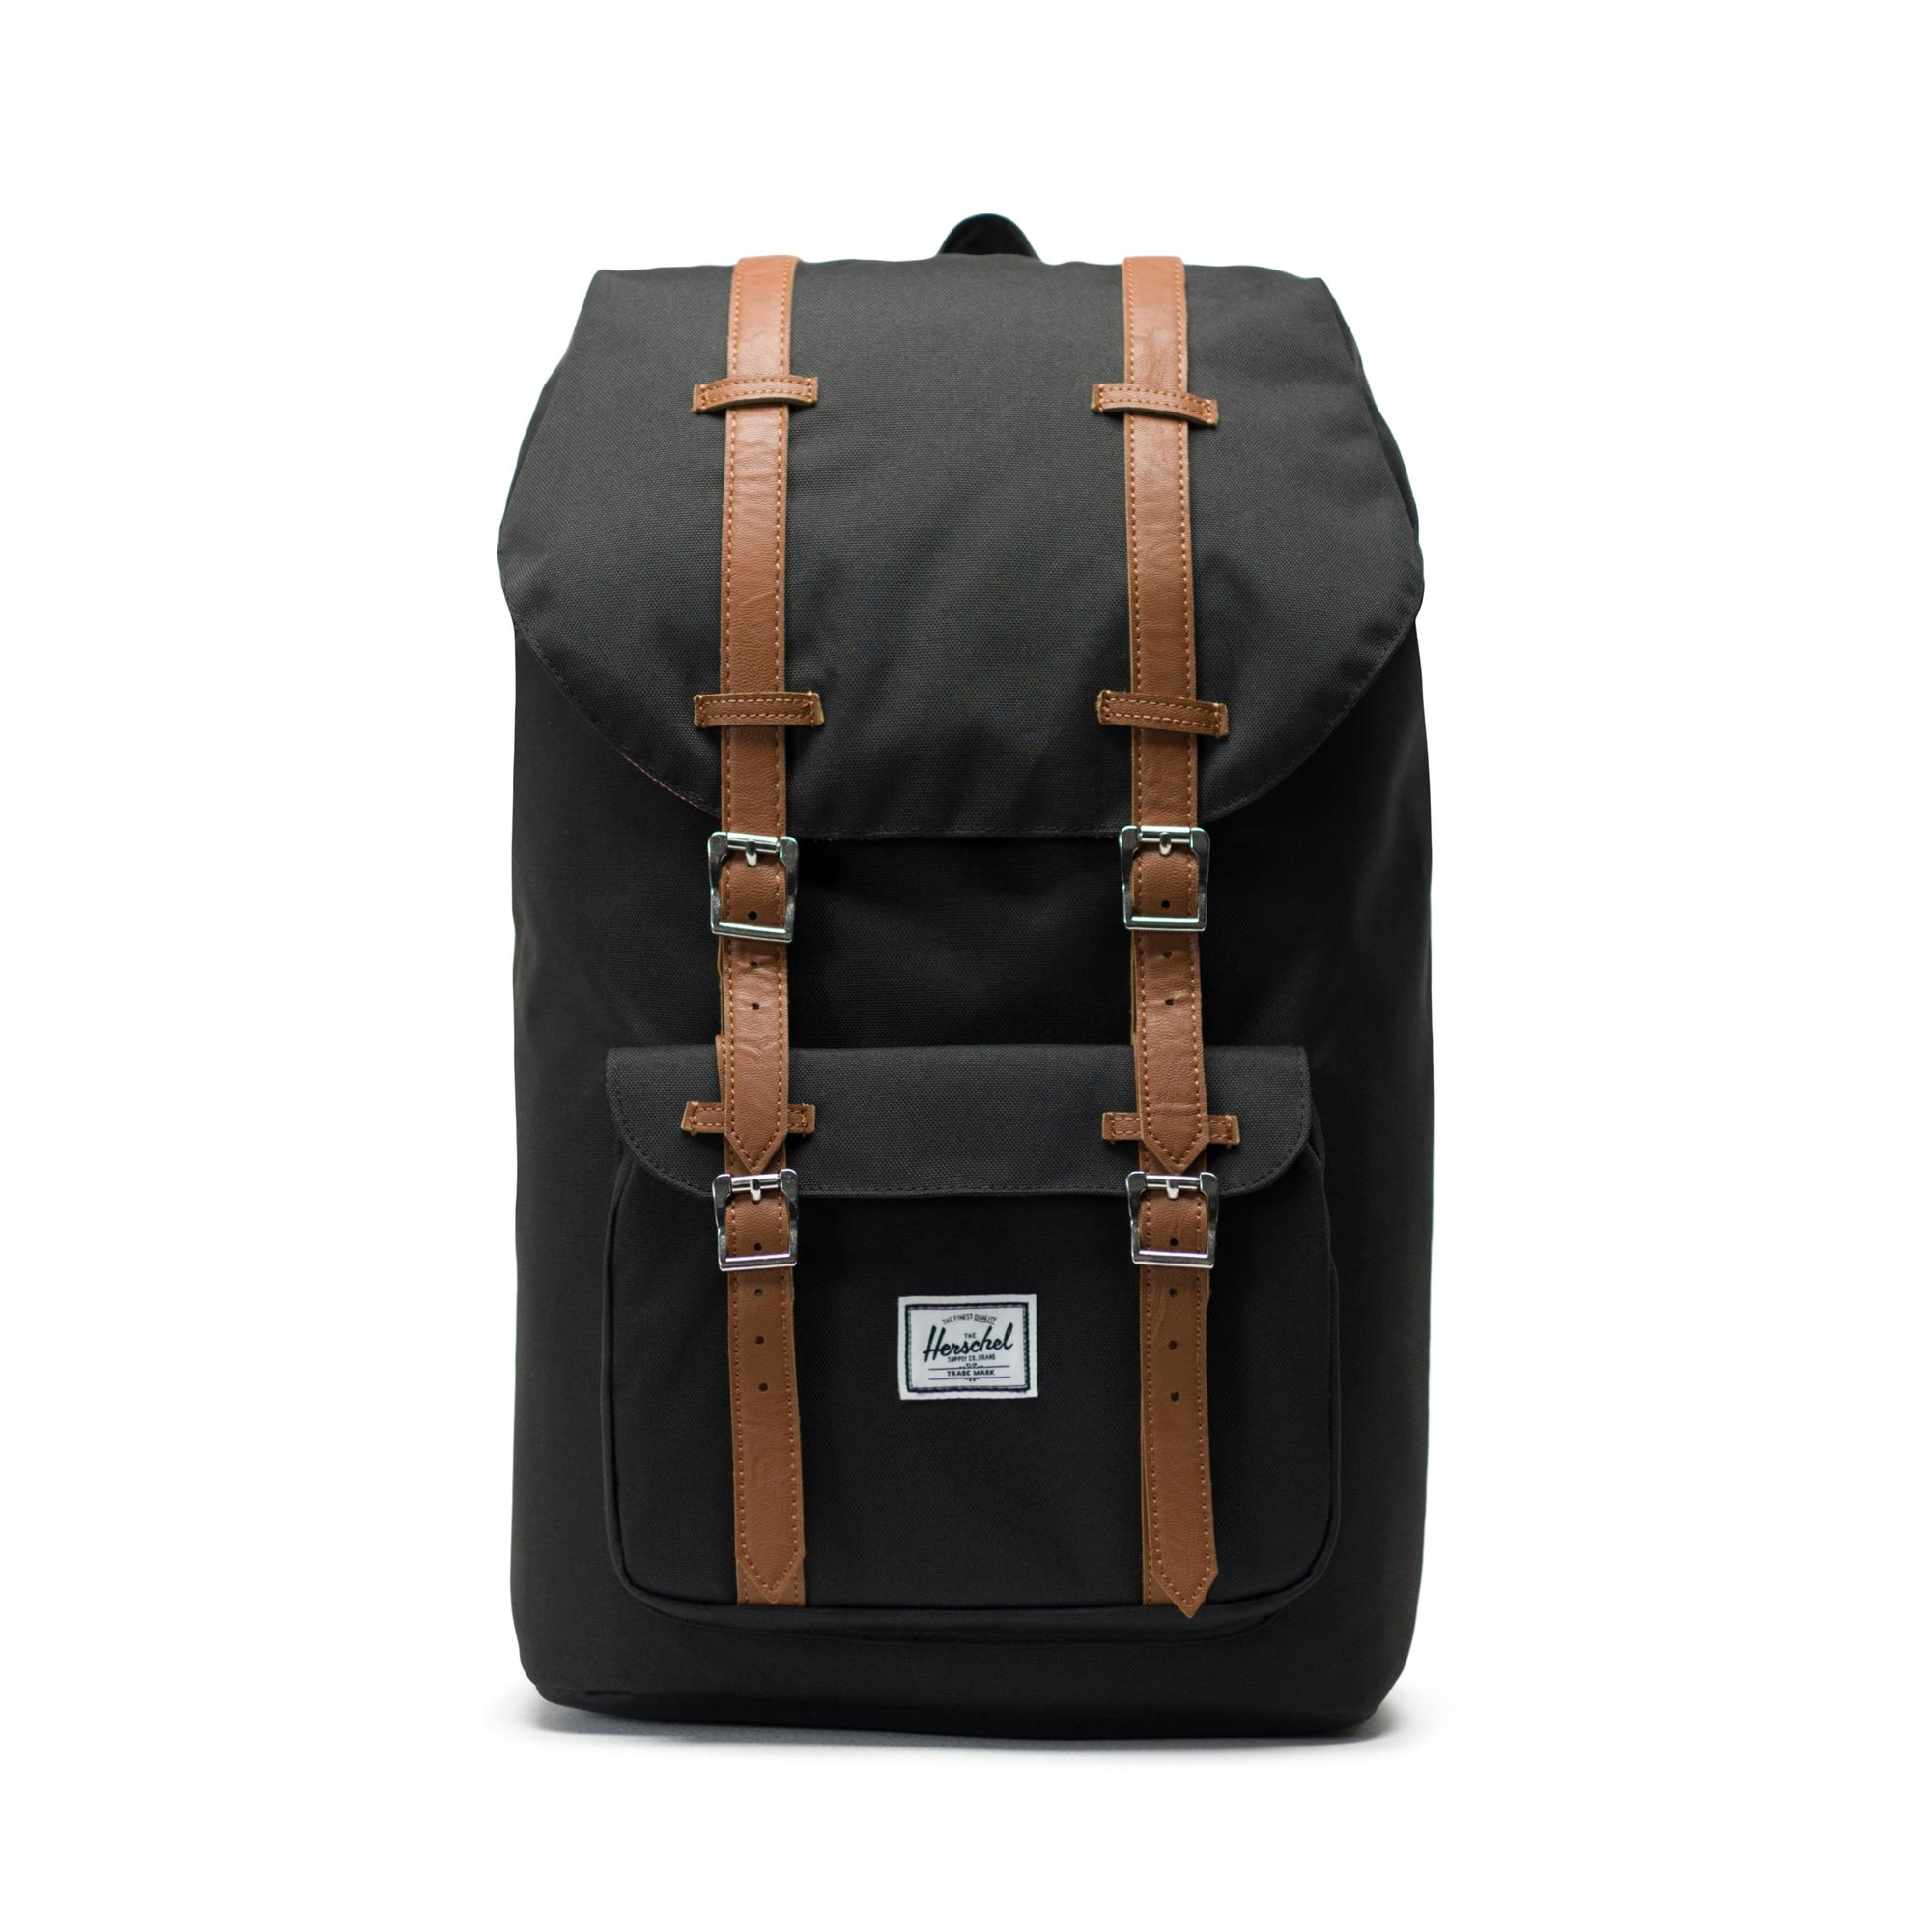 beb21026d49c Herschel Little America Backpack